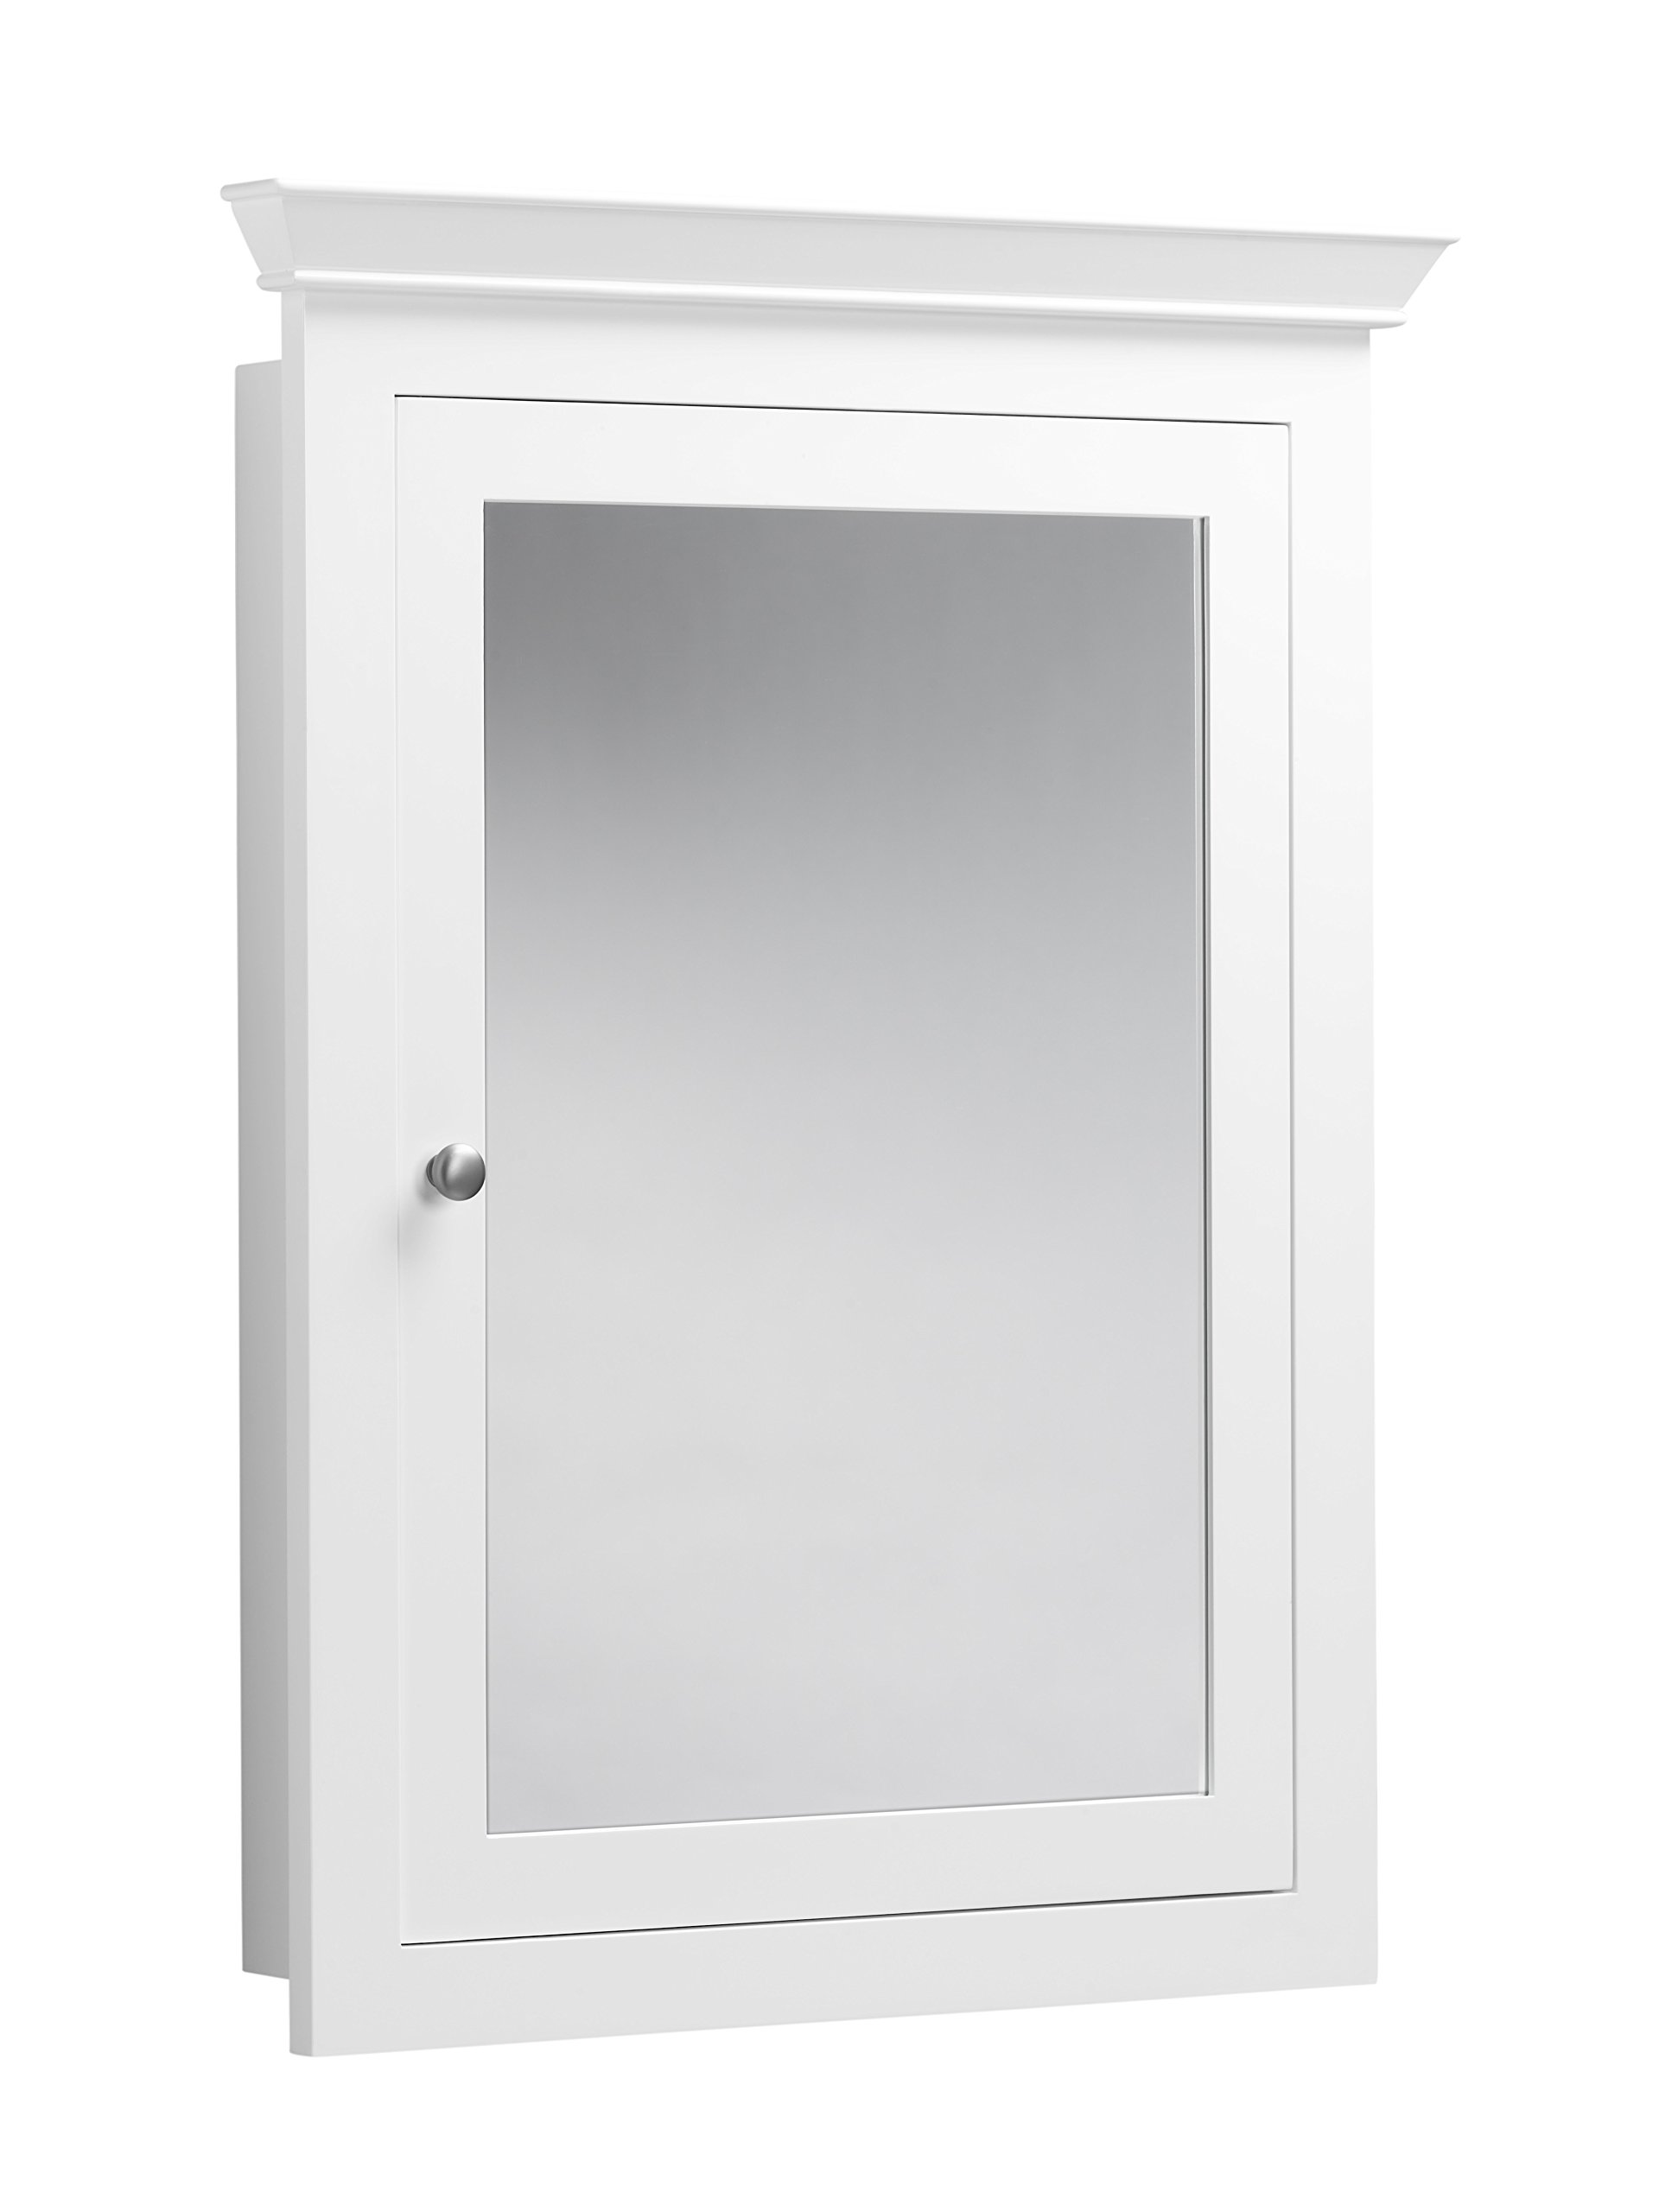 RONBOW Edward 27'' x 34'' Transitional Solid Wood Frame Bathroom Medicine Cabinet with 2 Mirrors and 2 Cabinet Shelves in White 617026-W01